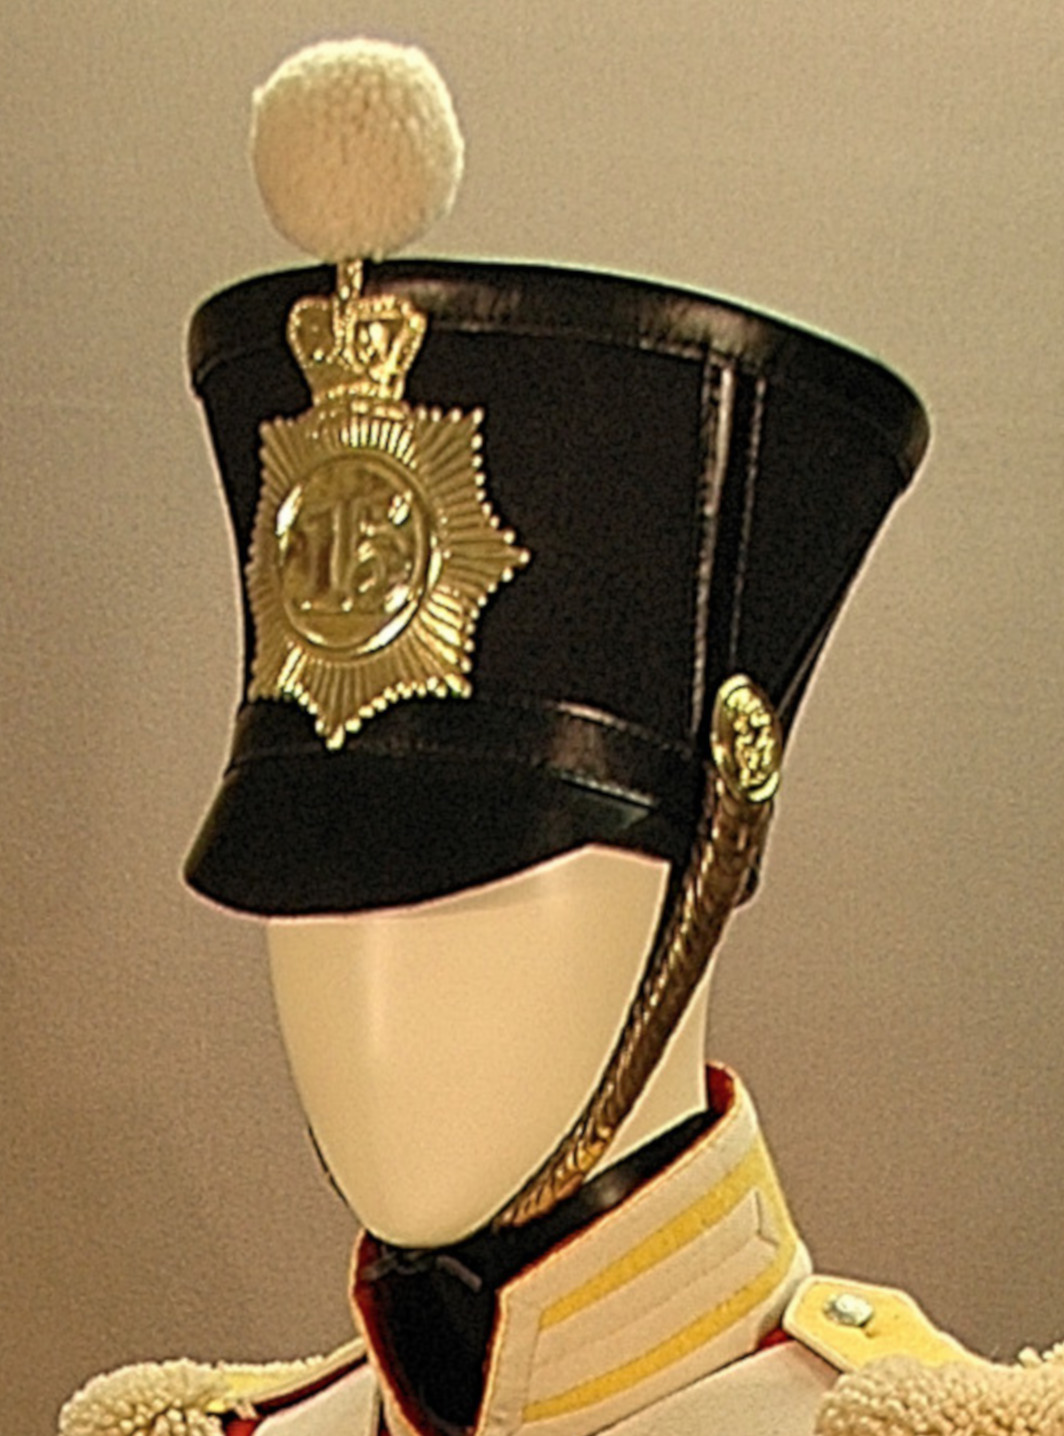 British, 15th Regt, Belltop Shako